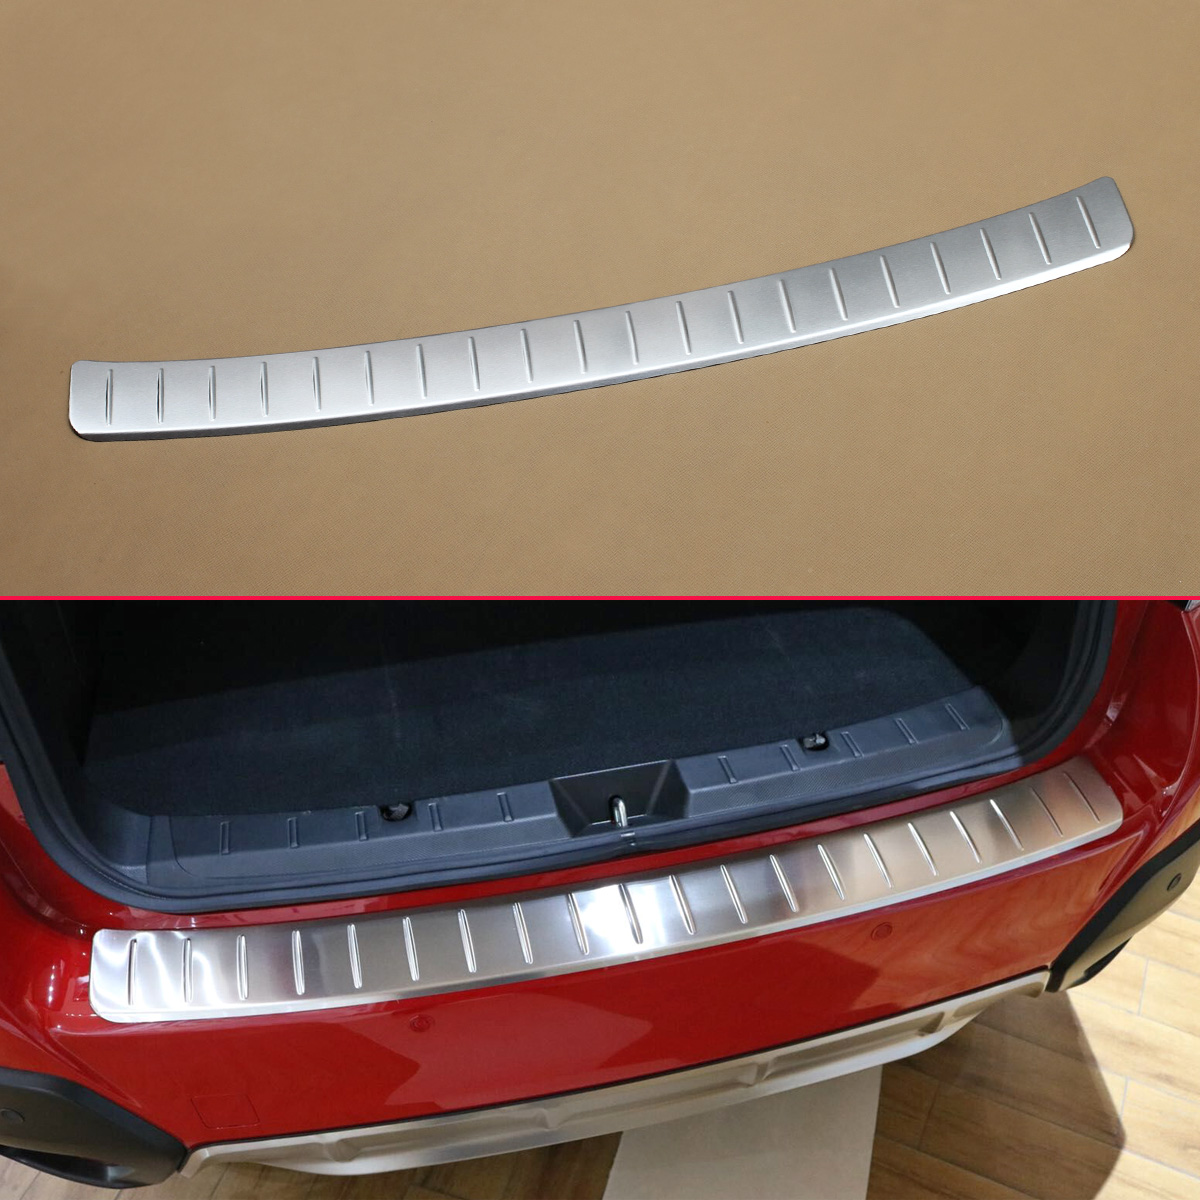 Stainless Steel Car Styling Rear Trunk Sill Cover For 2018 Subaru Crosstrek XV Bumper Protector Scuff Plate Overlay Accessories for subaru xv 2017 2018 suv stainless steel rear bumper protector sill trunk rear guard plate cover trim car styling accessories